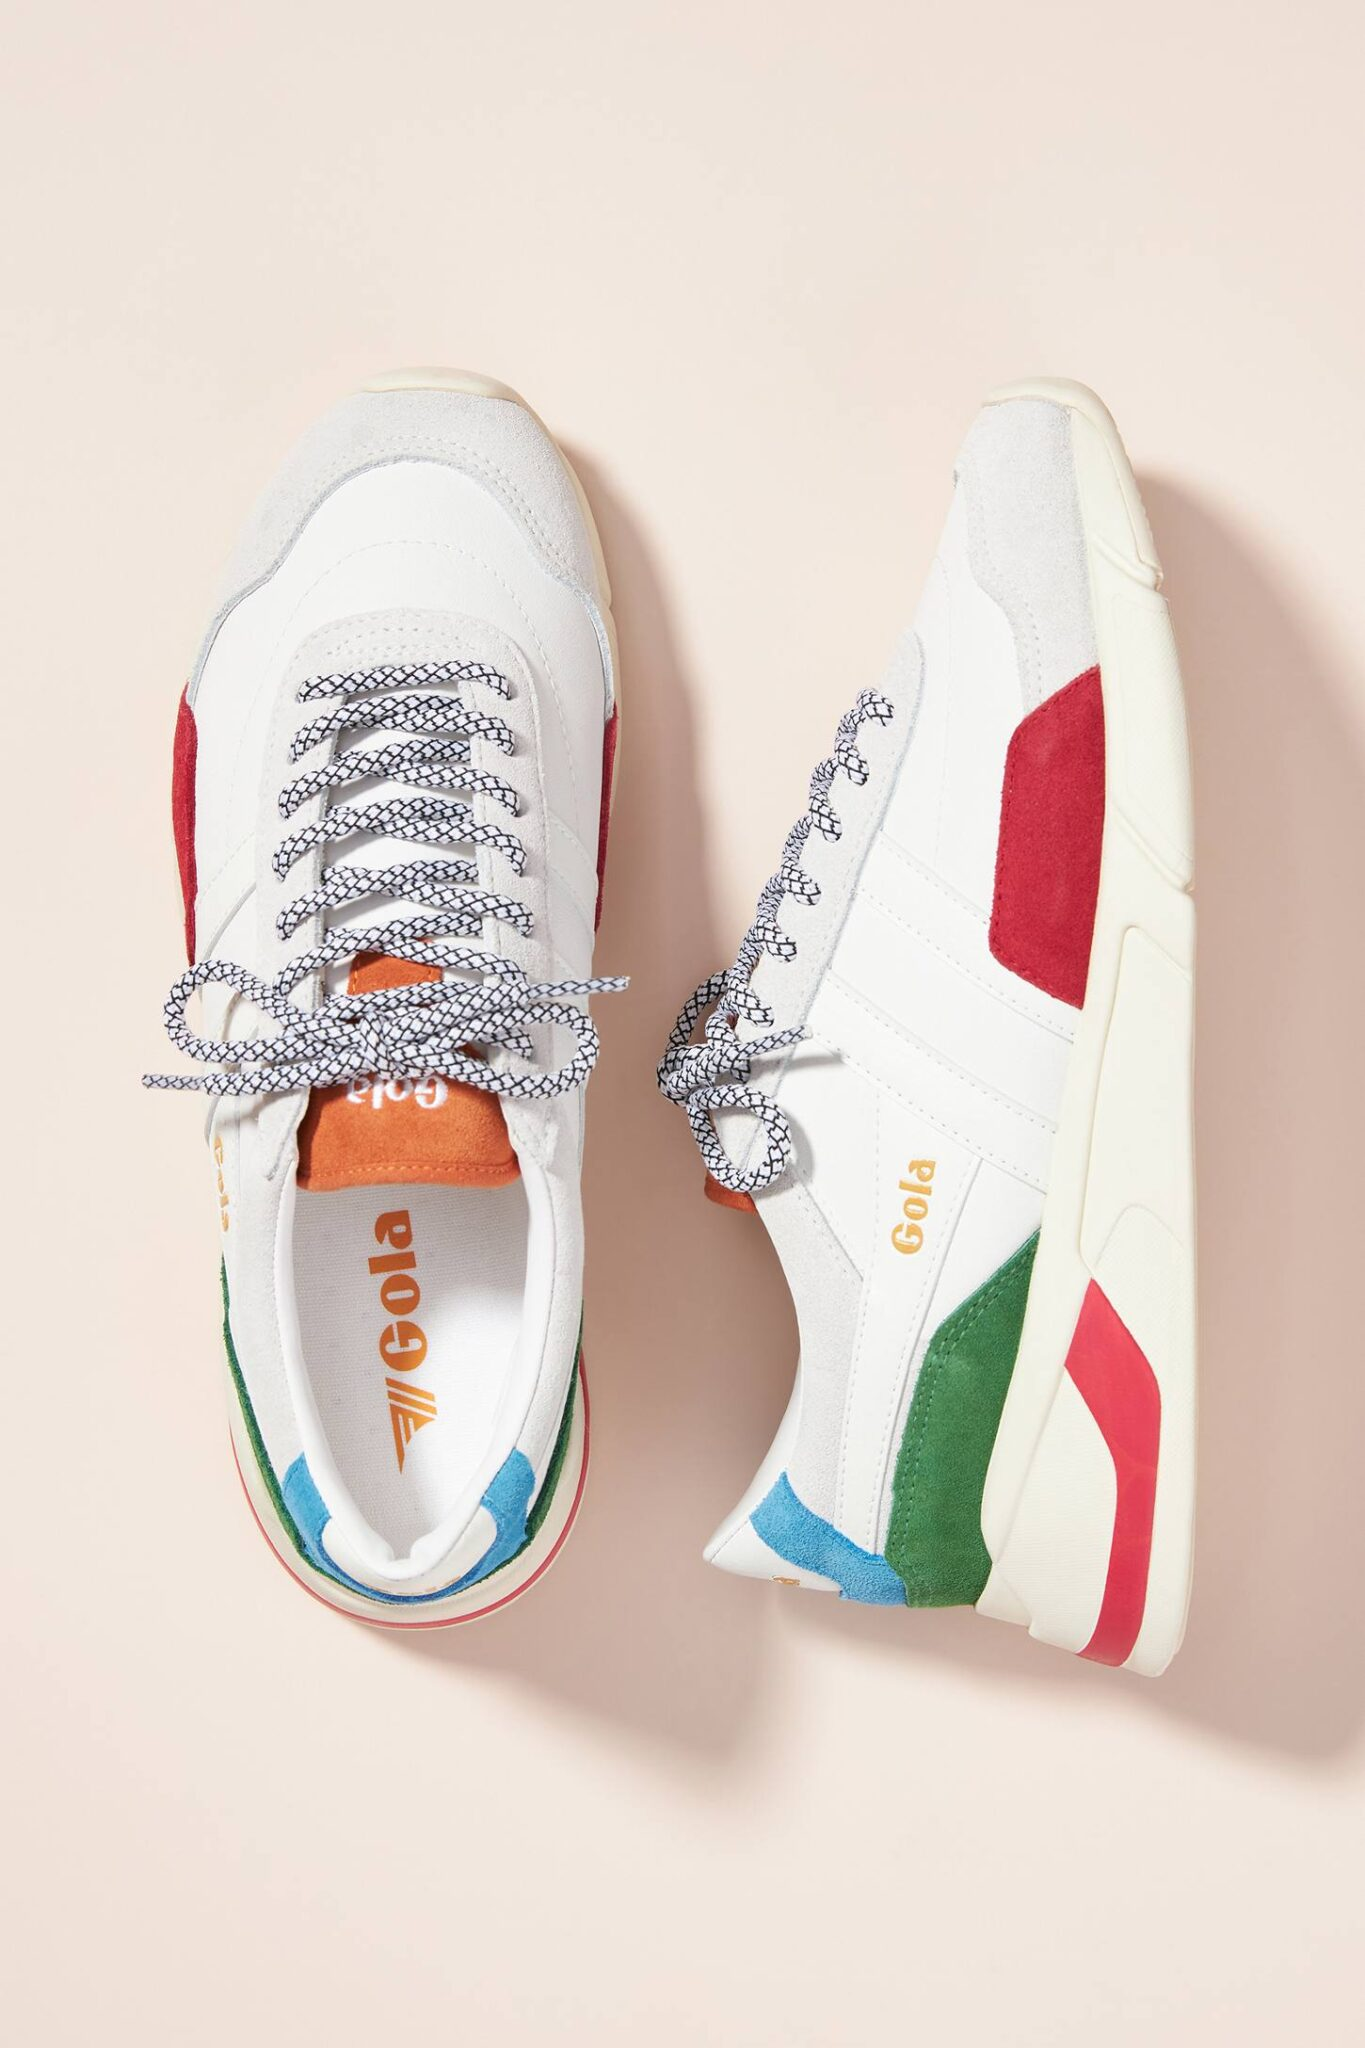 Gola Eclipse Trident Sneakers $110.00